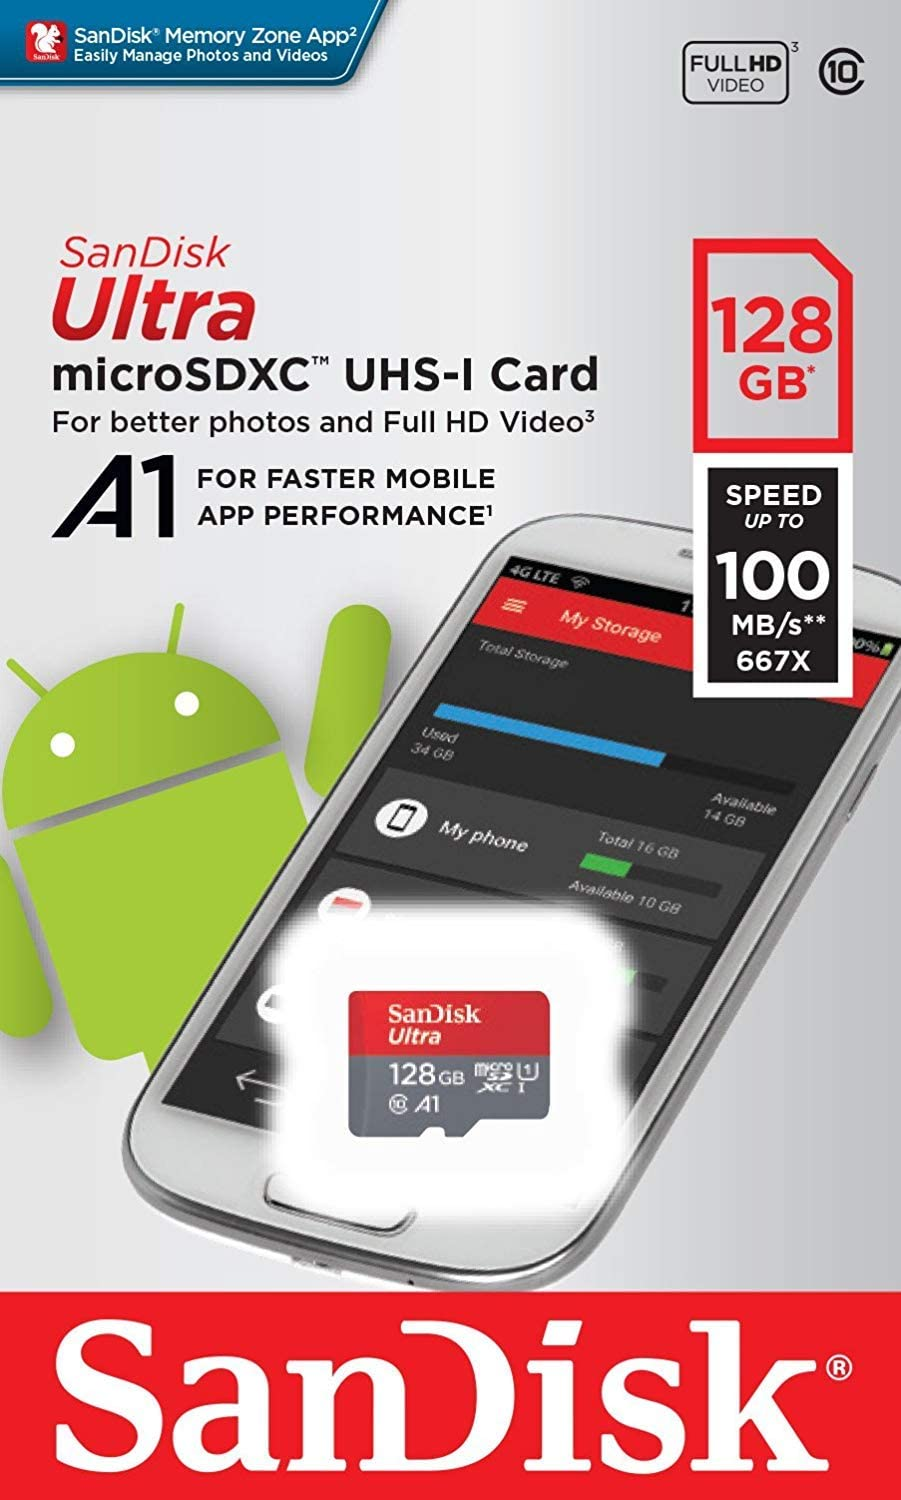 SanDisk Ultra 128GB MicroSDXC Verified for Motorola Moto XT1900-2 by SanFlash 100MBs A1 U1 C10 Works with SanDisk